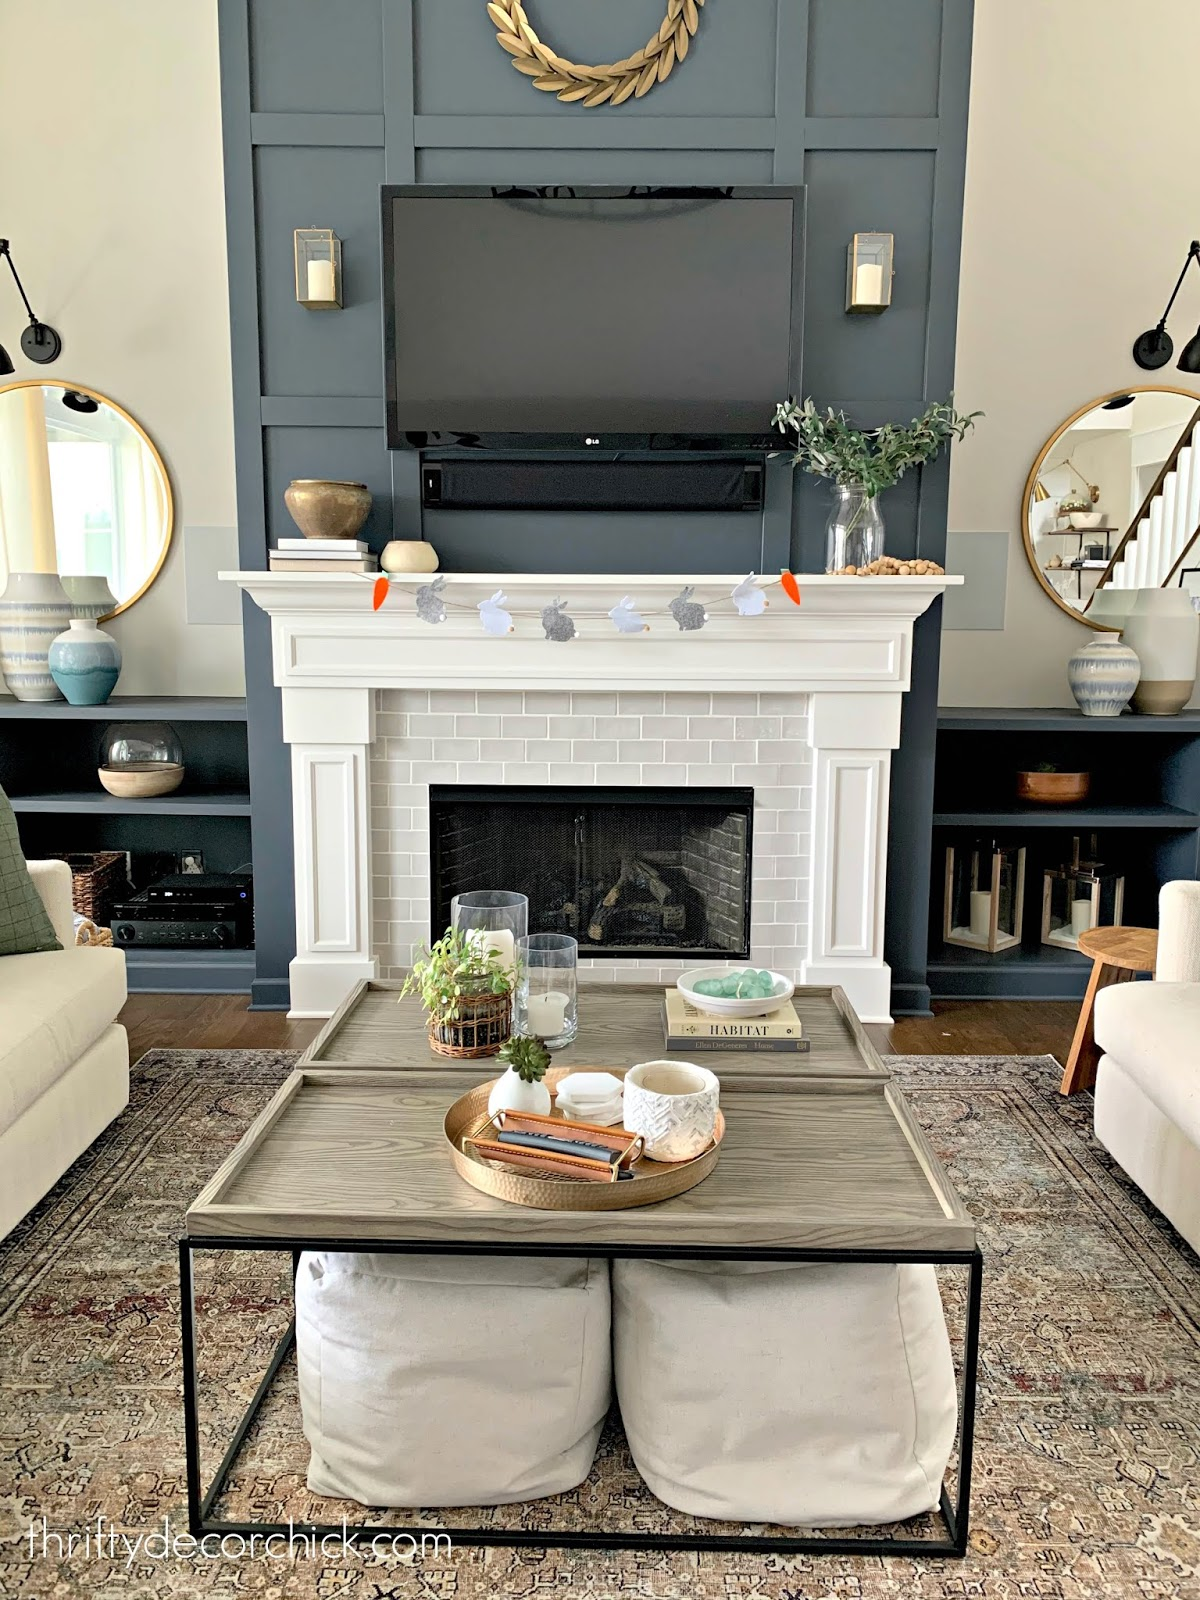 Tall fireplace with dark paint and grid trim work